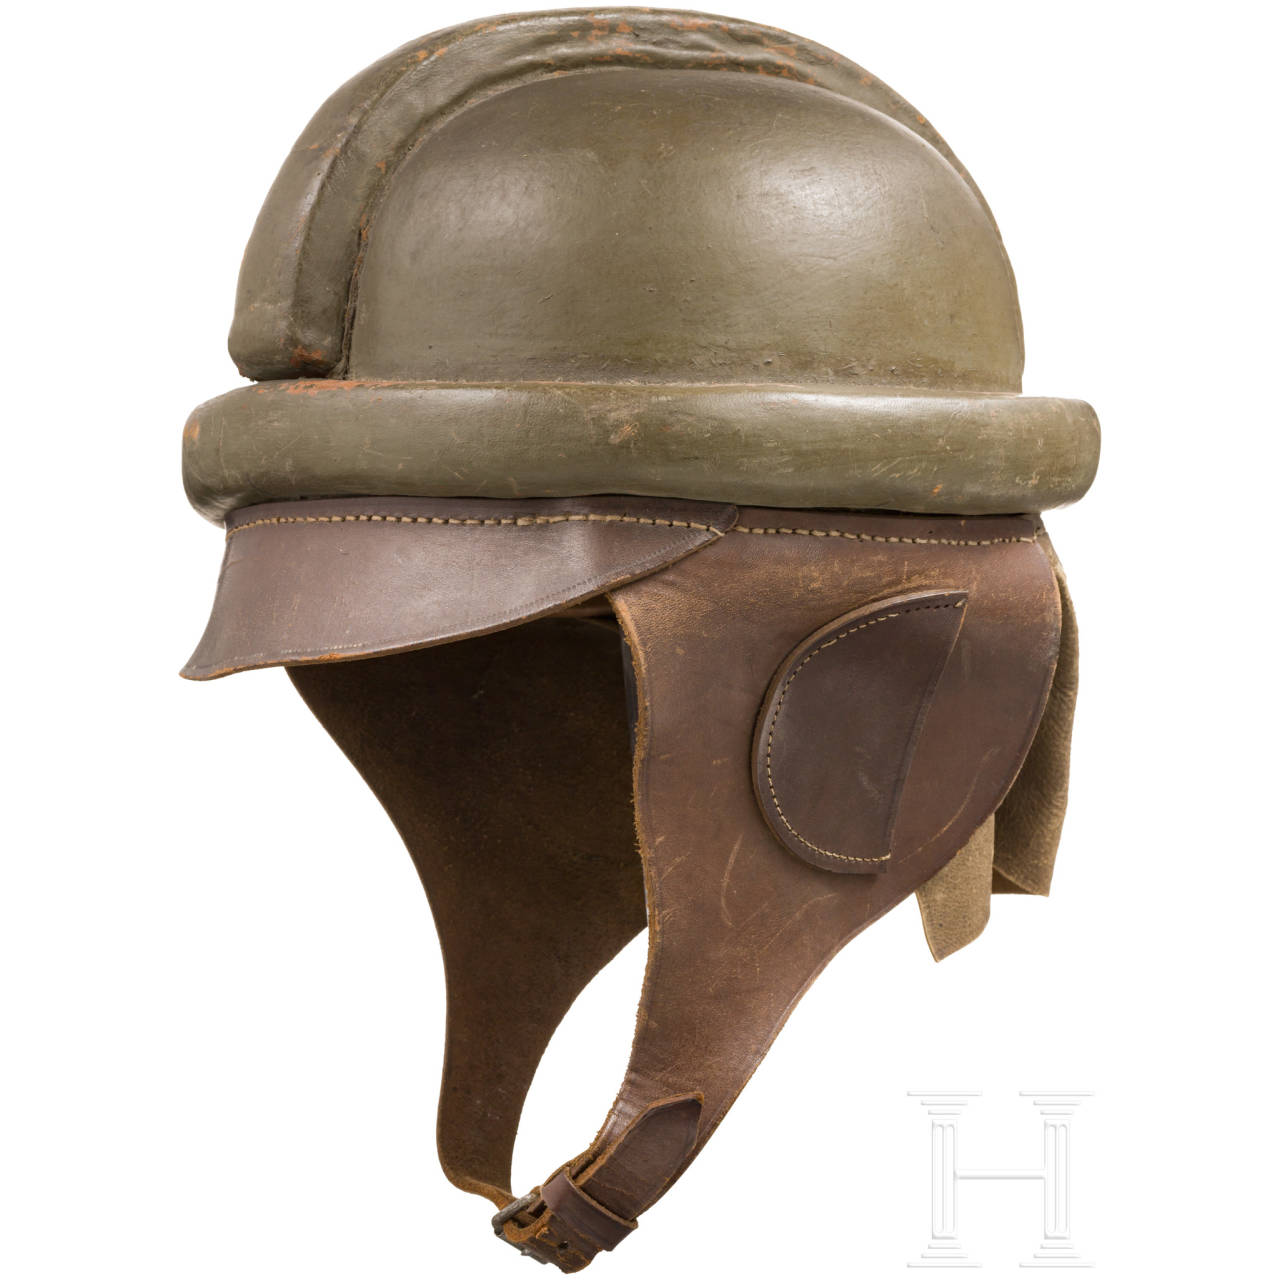 Helmet for flying personnel